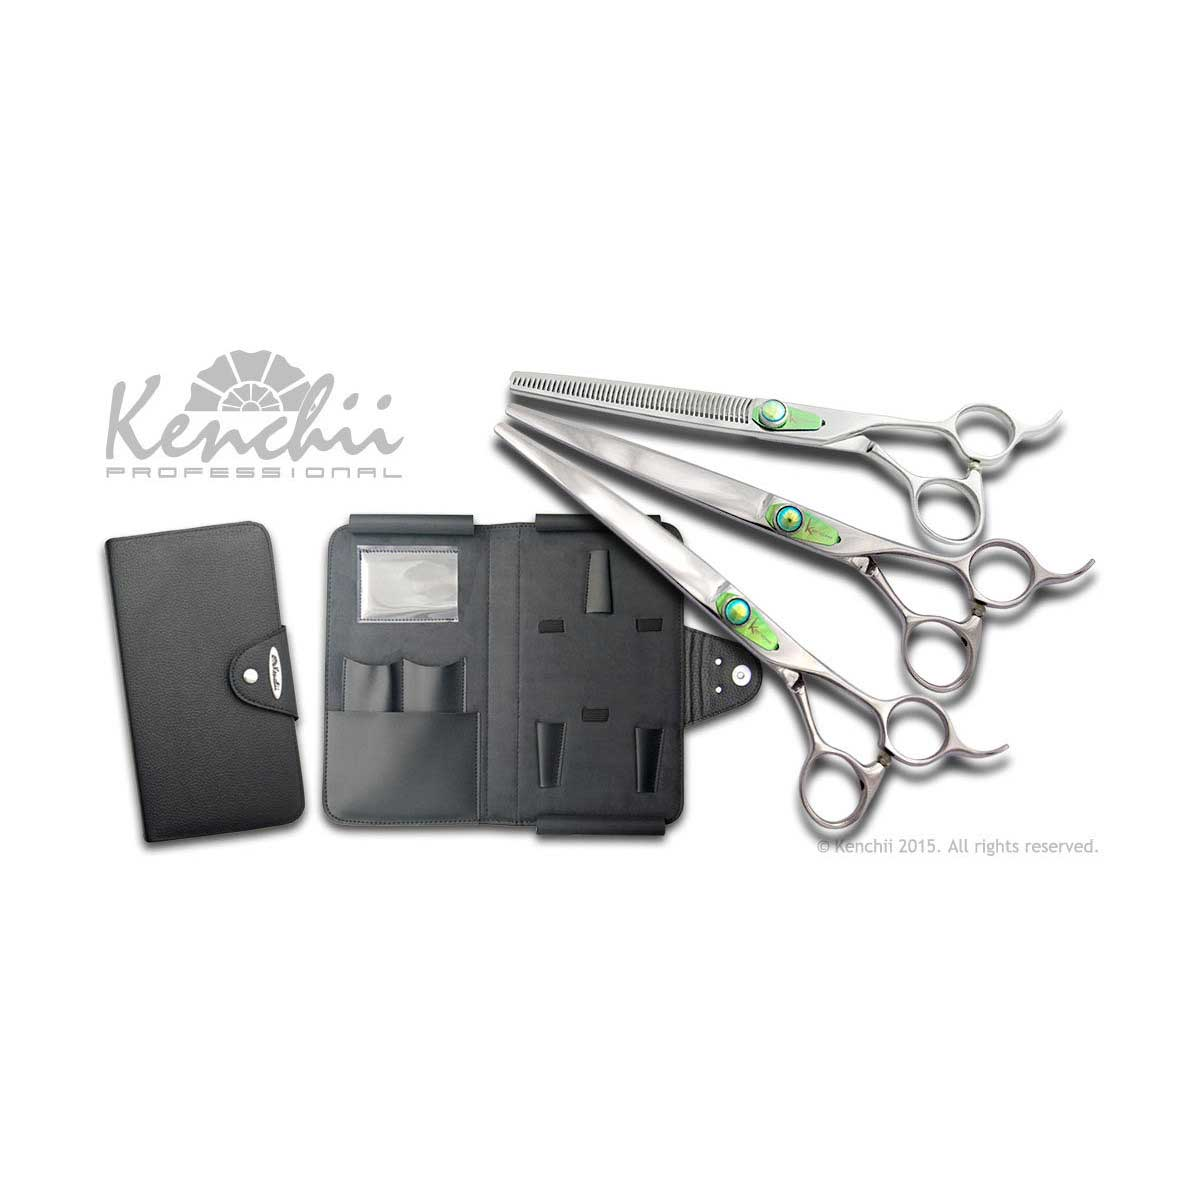 Kenchii Professional T-Series Shear Set includes 8 in Straight Shear, 8 in Curved Shear and a 48 Tooth 6.5 in Thinner